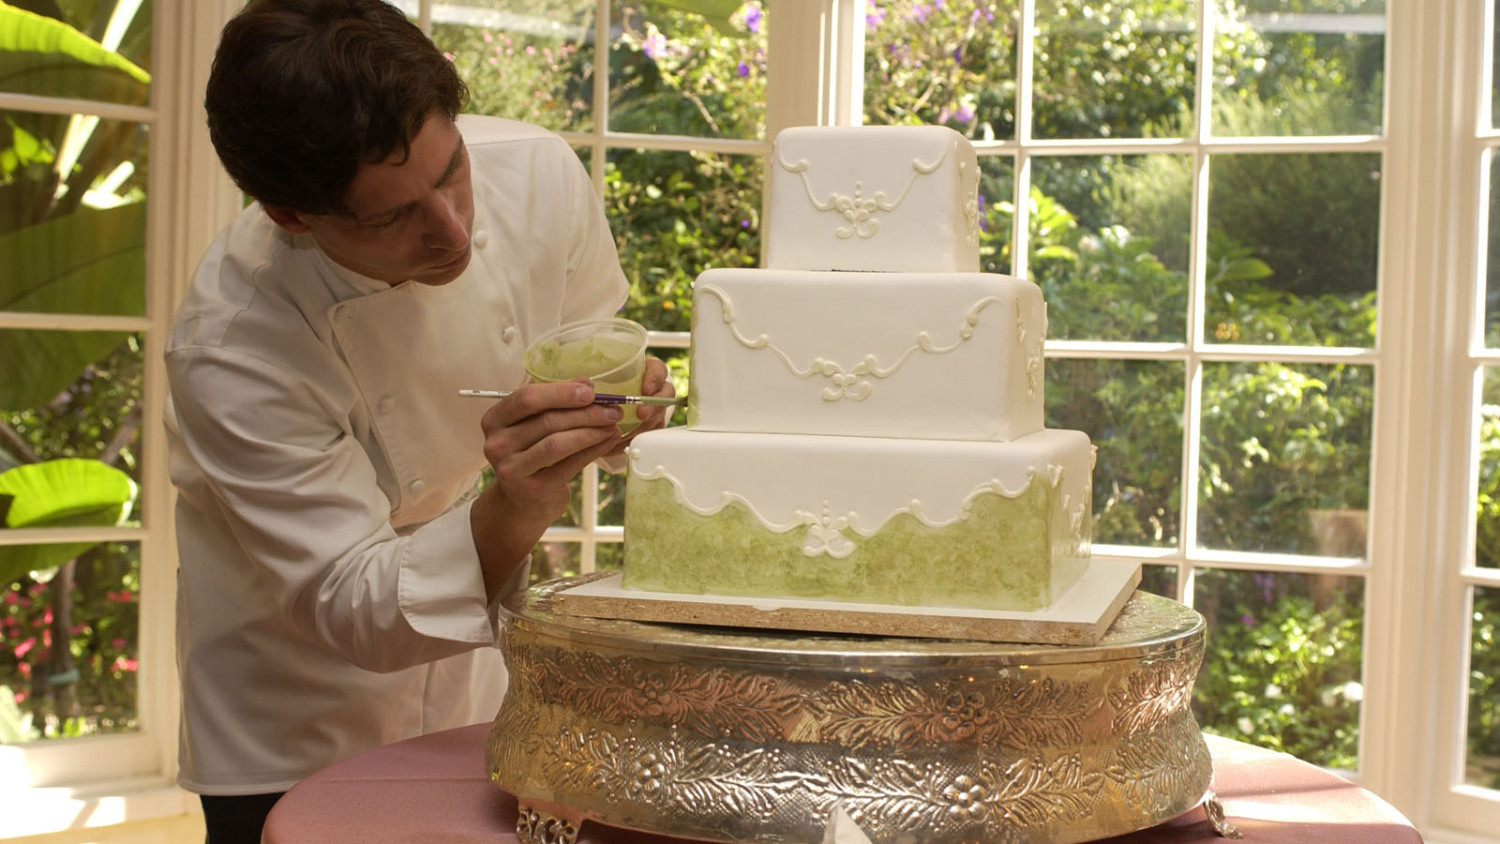 Denver Wedding Cakes  Top Places For Wedding Cakes In Denver CBS Denver